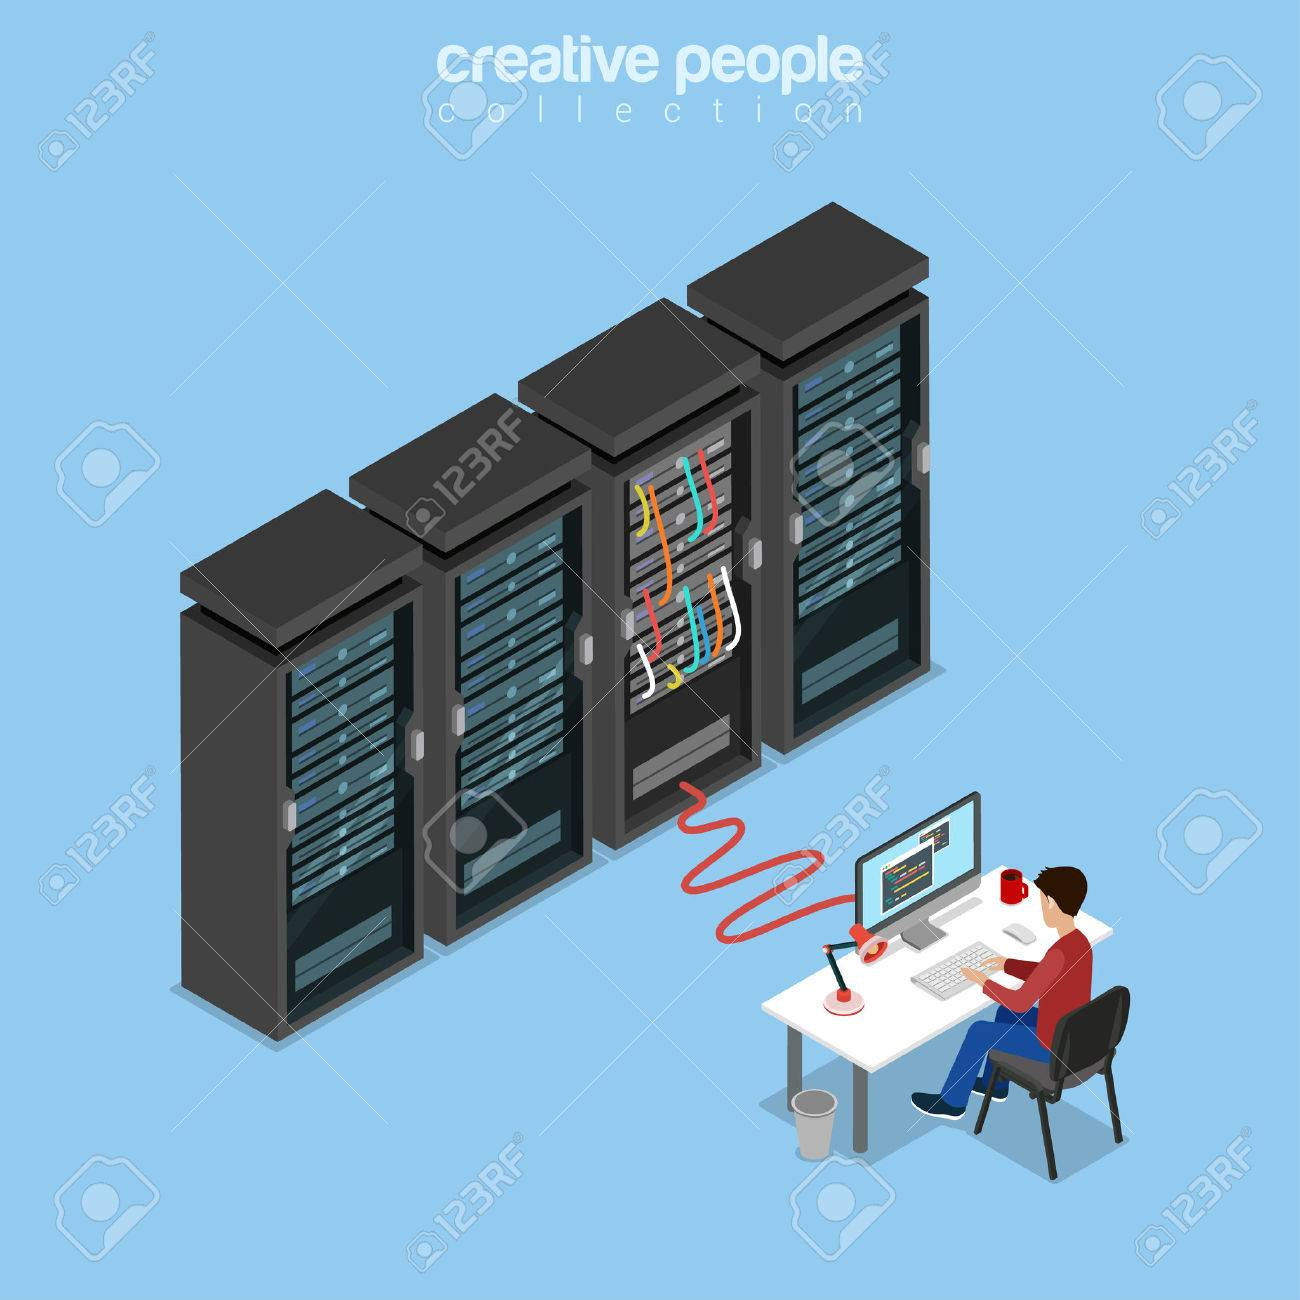 Flat isometric System Administrator, Server Admin, IT guy, Programmer or code developer working on computer, connected to server rack vector illustration. 3d isometry Technology and Telecom concept. - 64110473